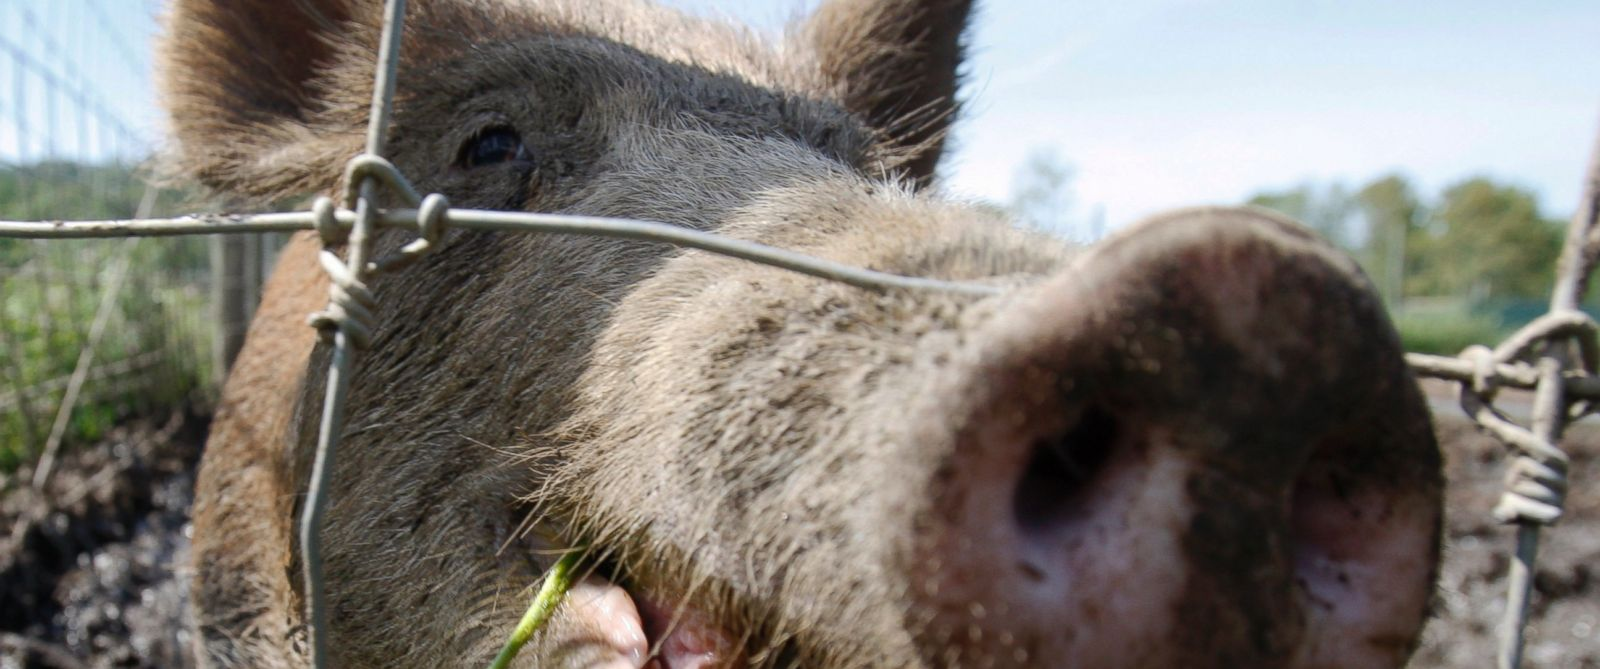 PHOTO: A feral hog stands in a holding pen at Easton View Outfitters in Valley Falls, N.Y in this Aug. 24, 2011 file photo.